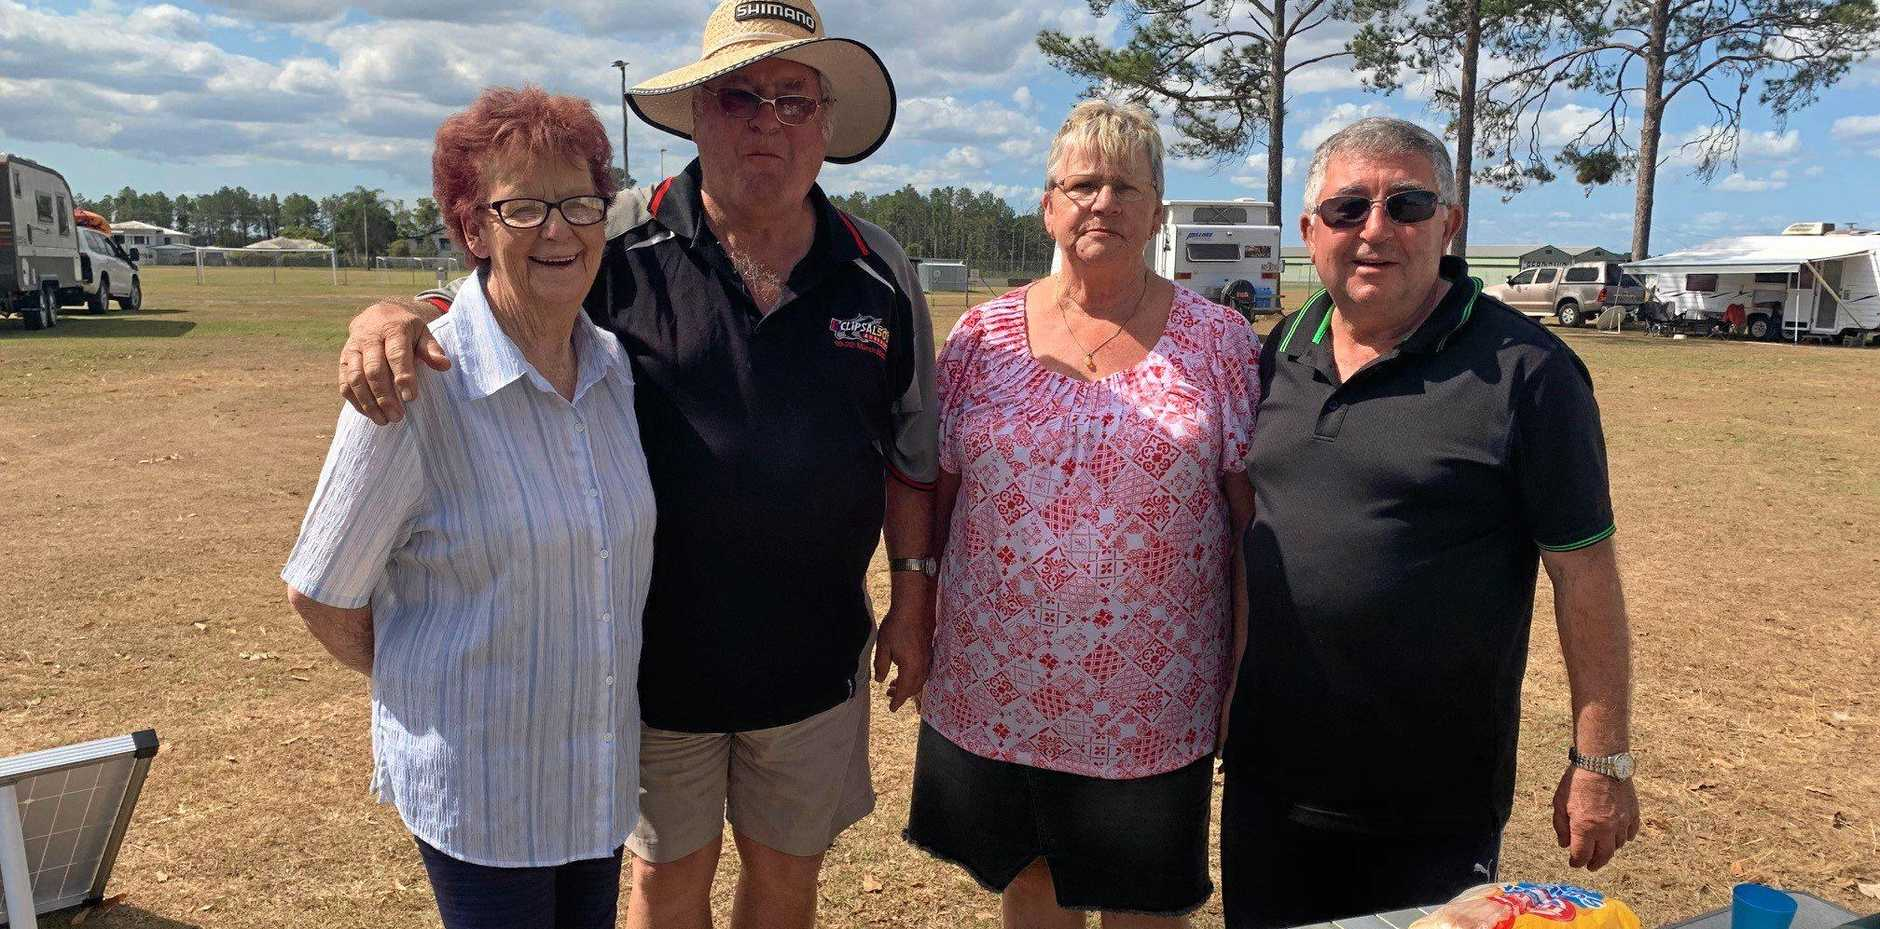 Marlene and Roy Littlehales, and Raelene and Burt Harry are travelling Australia together.